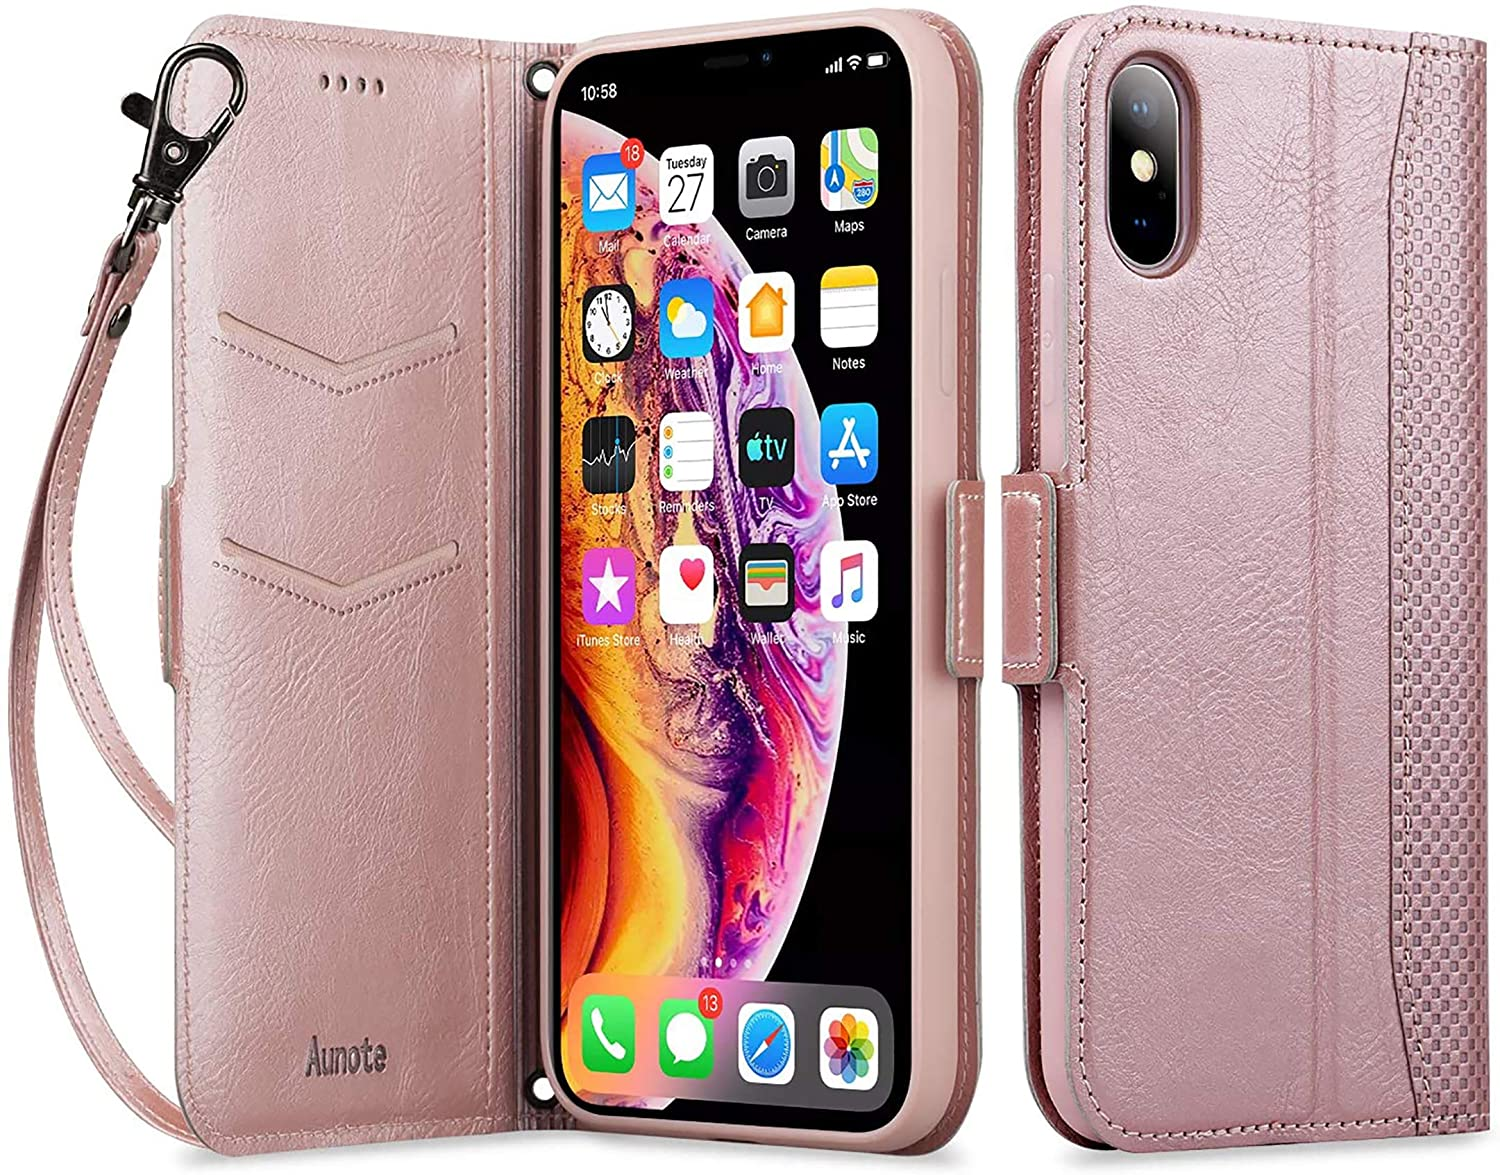 Aunote iPhone X Case, iPhone 10 Leather Wallet Case, Dropproof Case, Flip Folio Wallet Case with Kickstand Function, Card Slots, Magnetic Closur for iPhone X 5.8